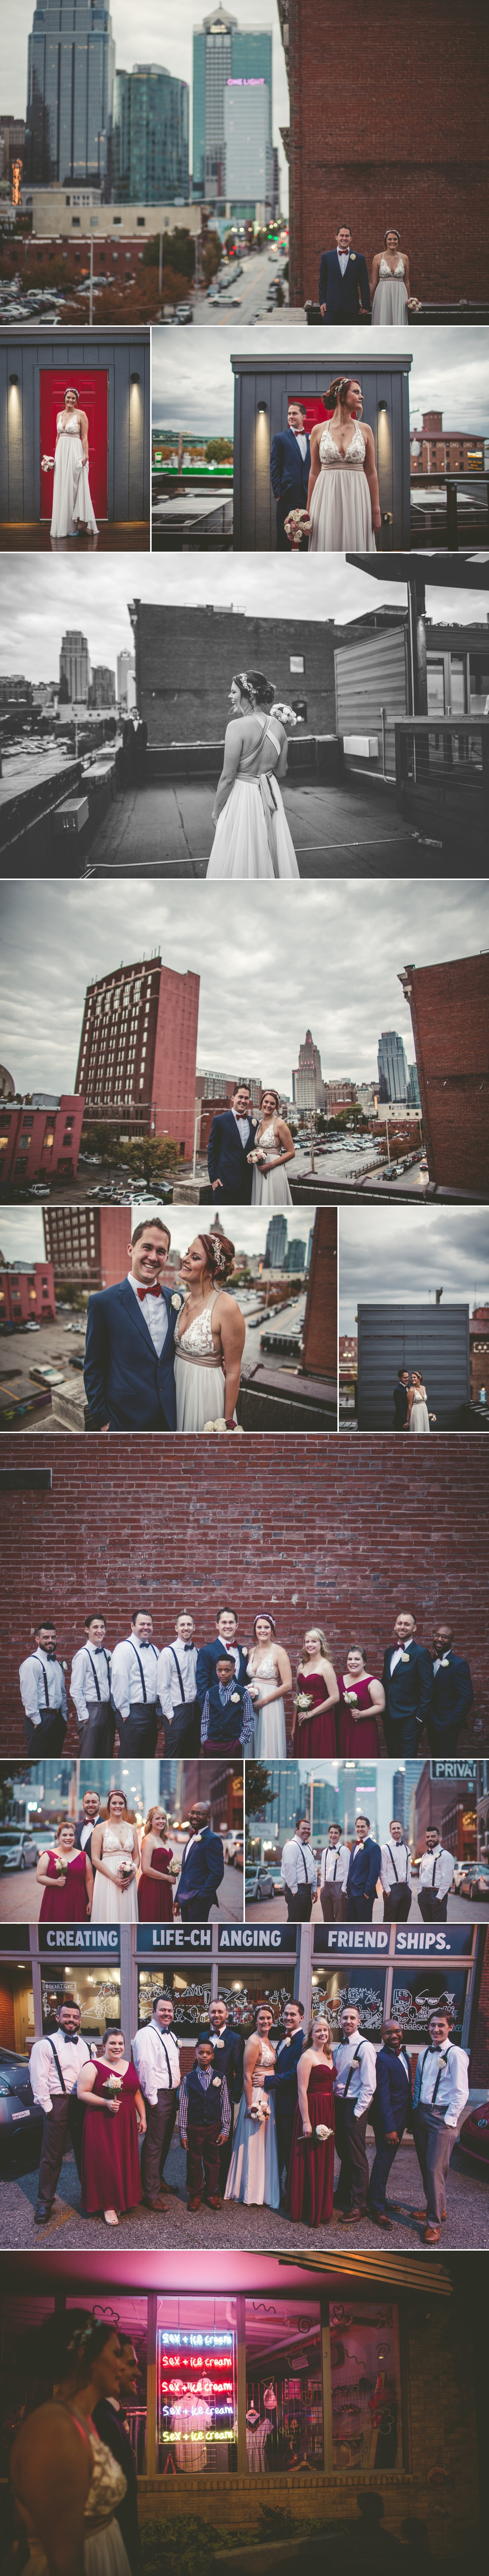 jason_domingues_photography_best_kansas_city_wedding_photographer_kc_weddings_big_brothers_big_sisters_0002.JPG